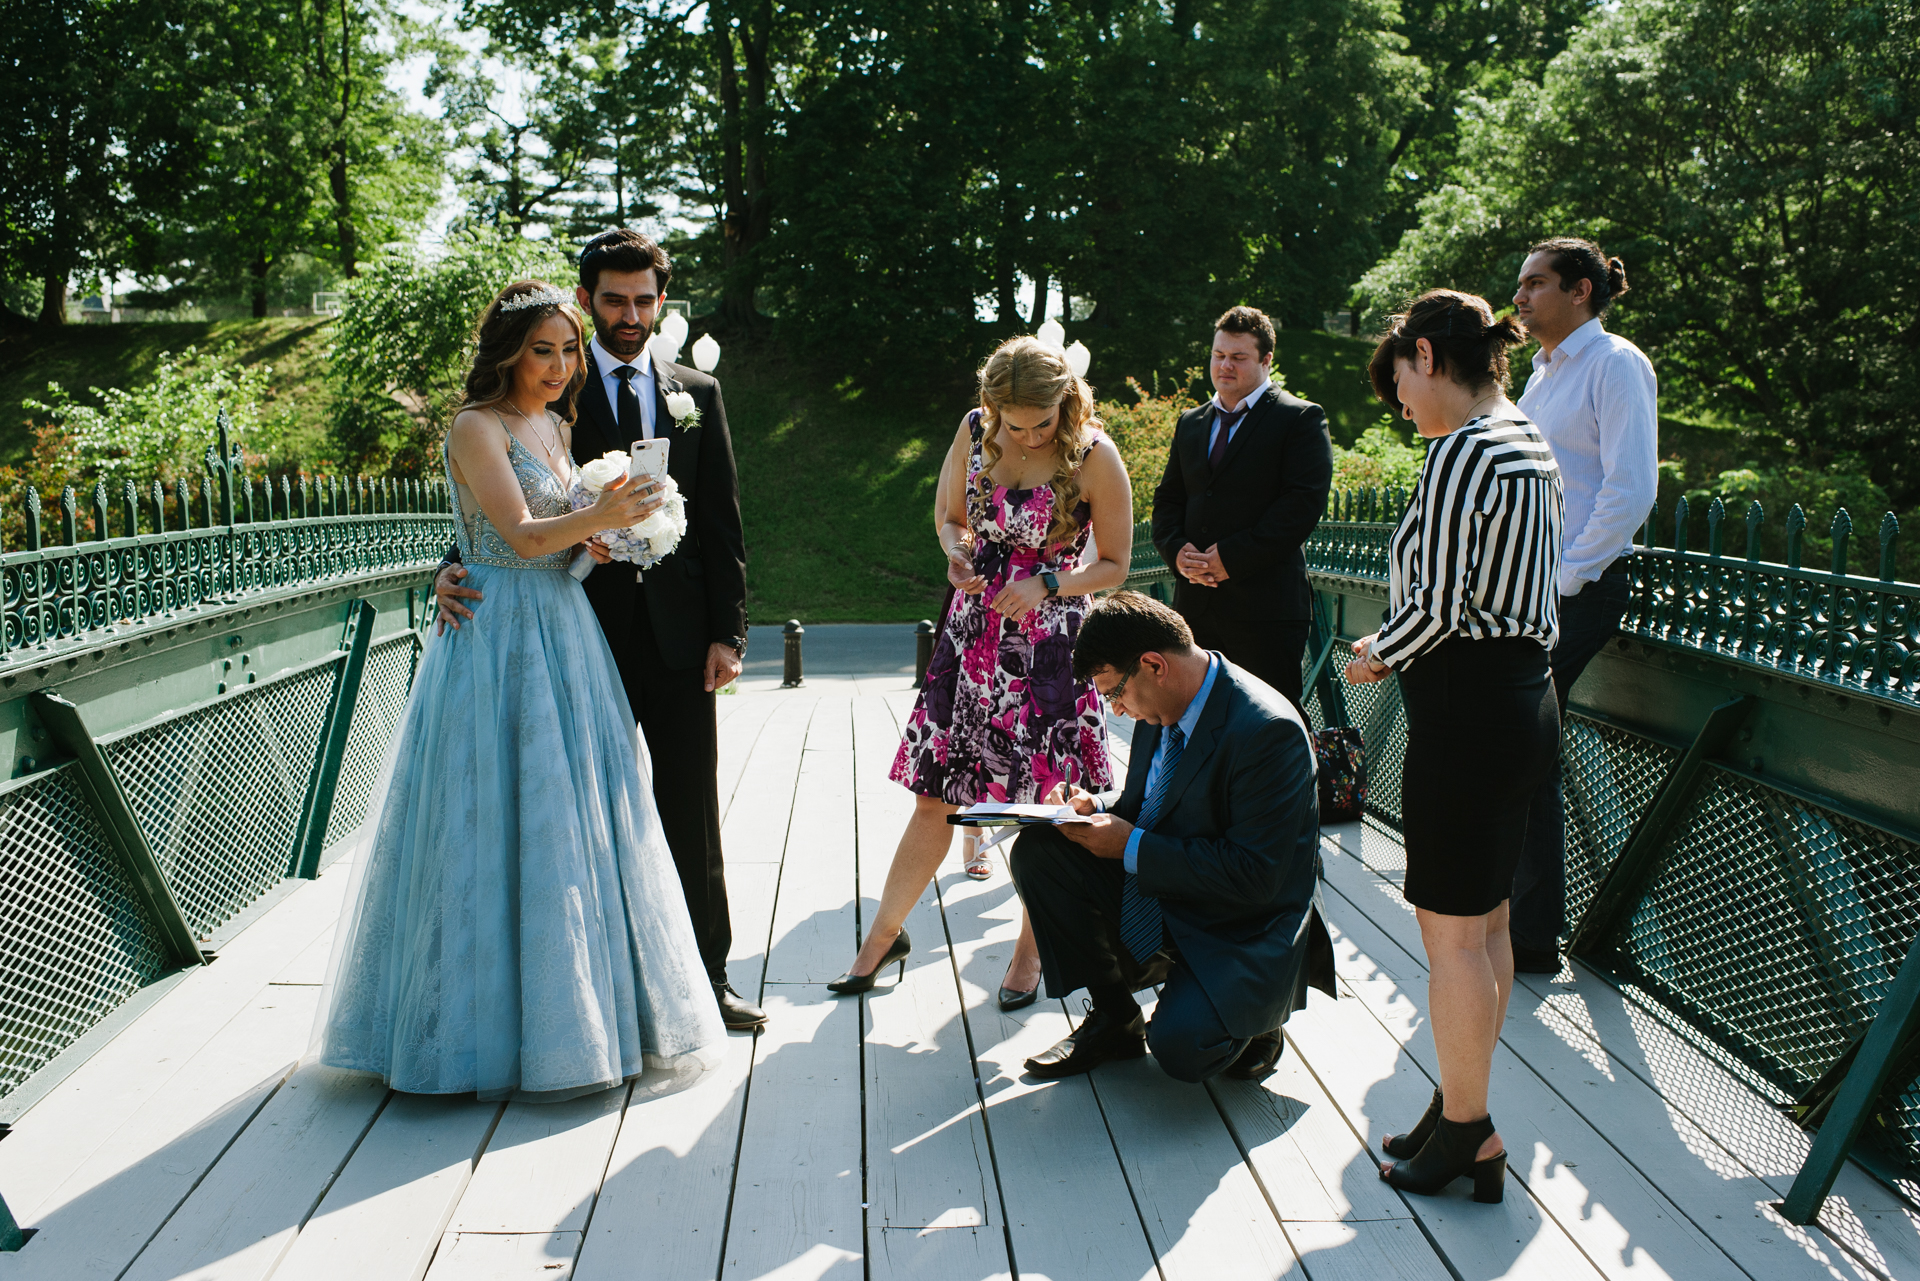 New York Elopement Ceremony Photography | The bride and groom stand with friends